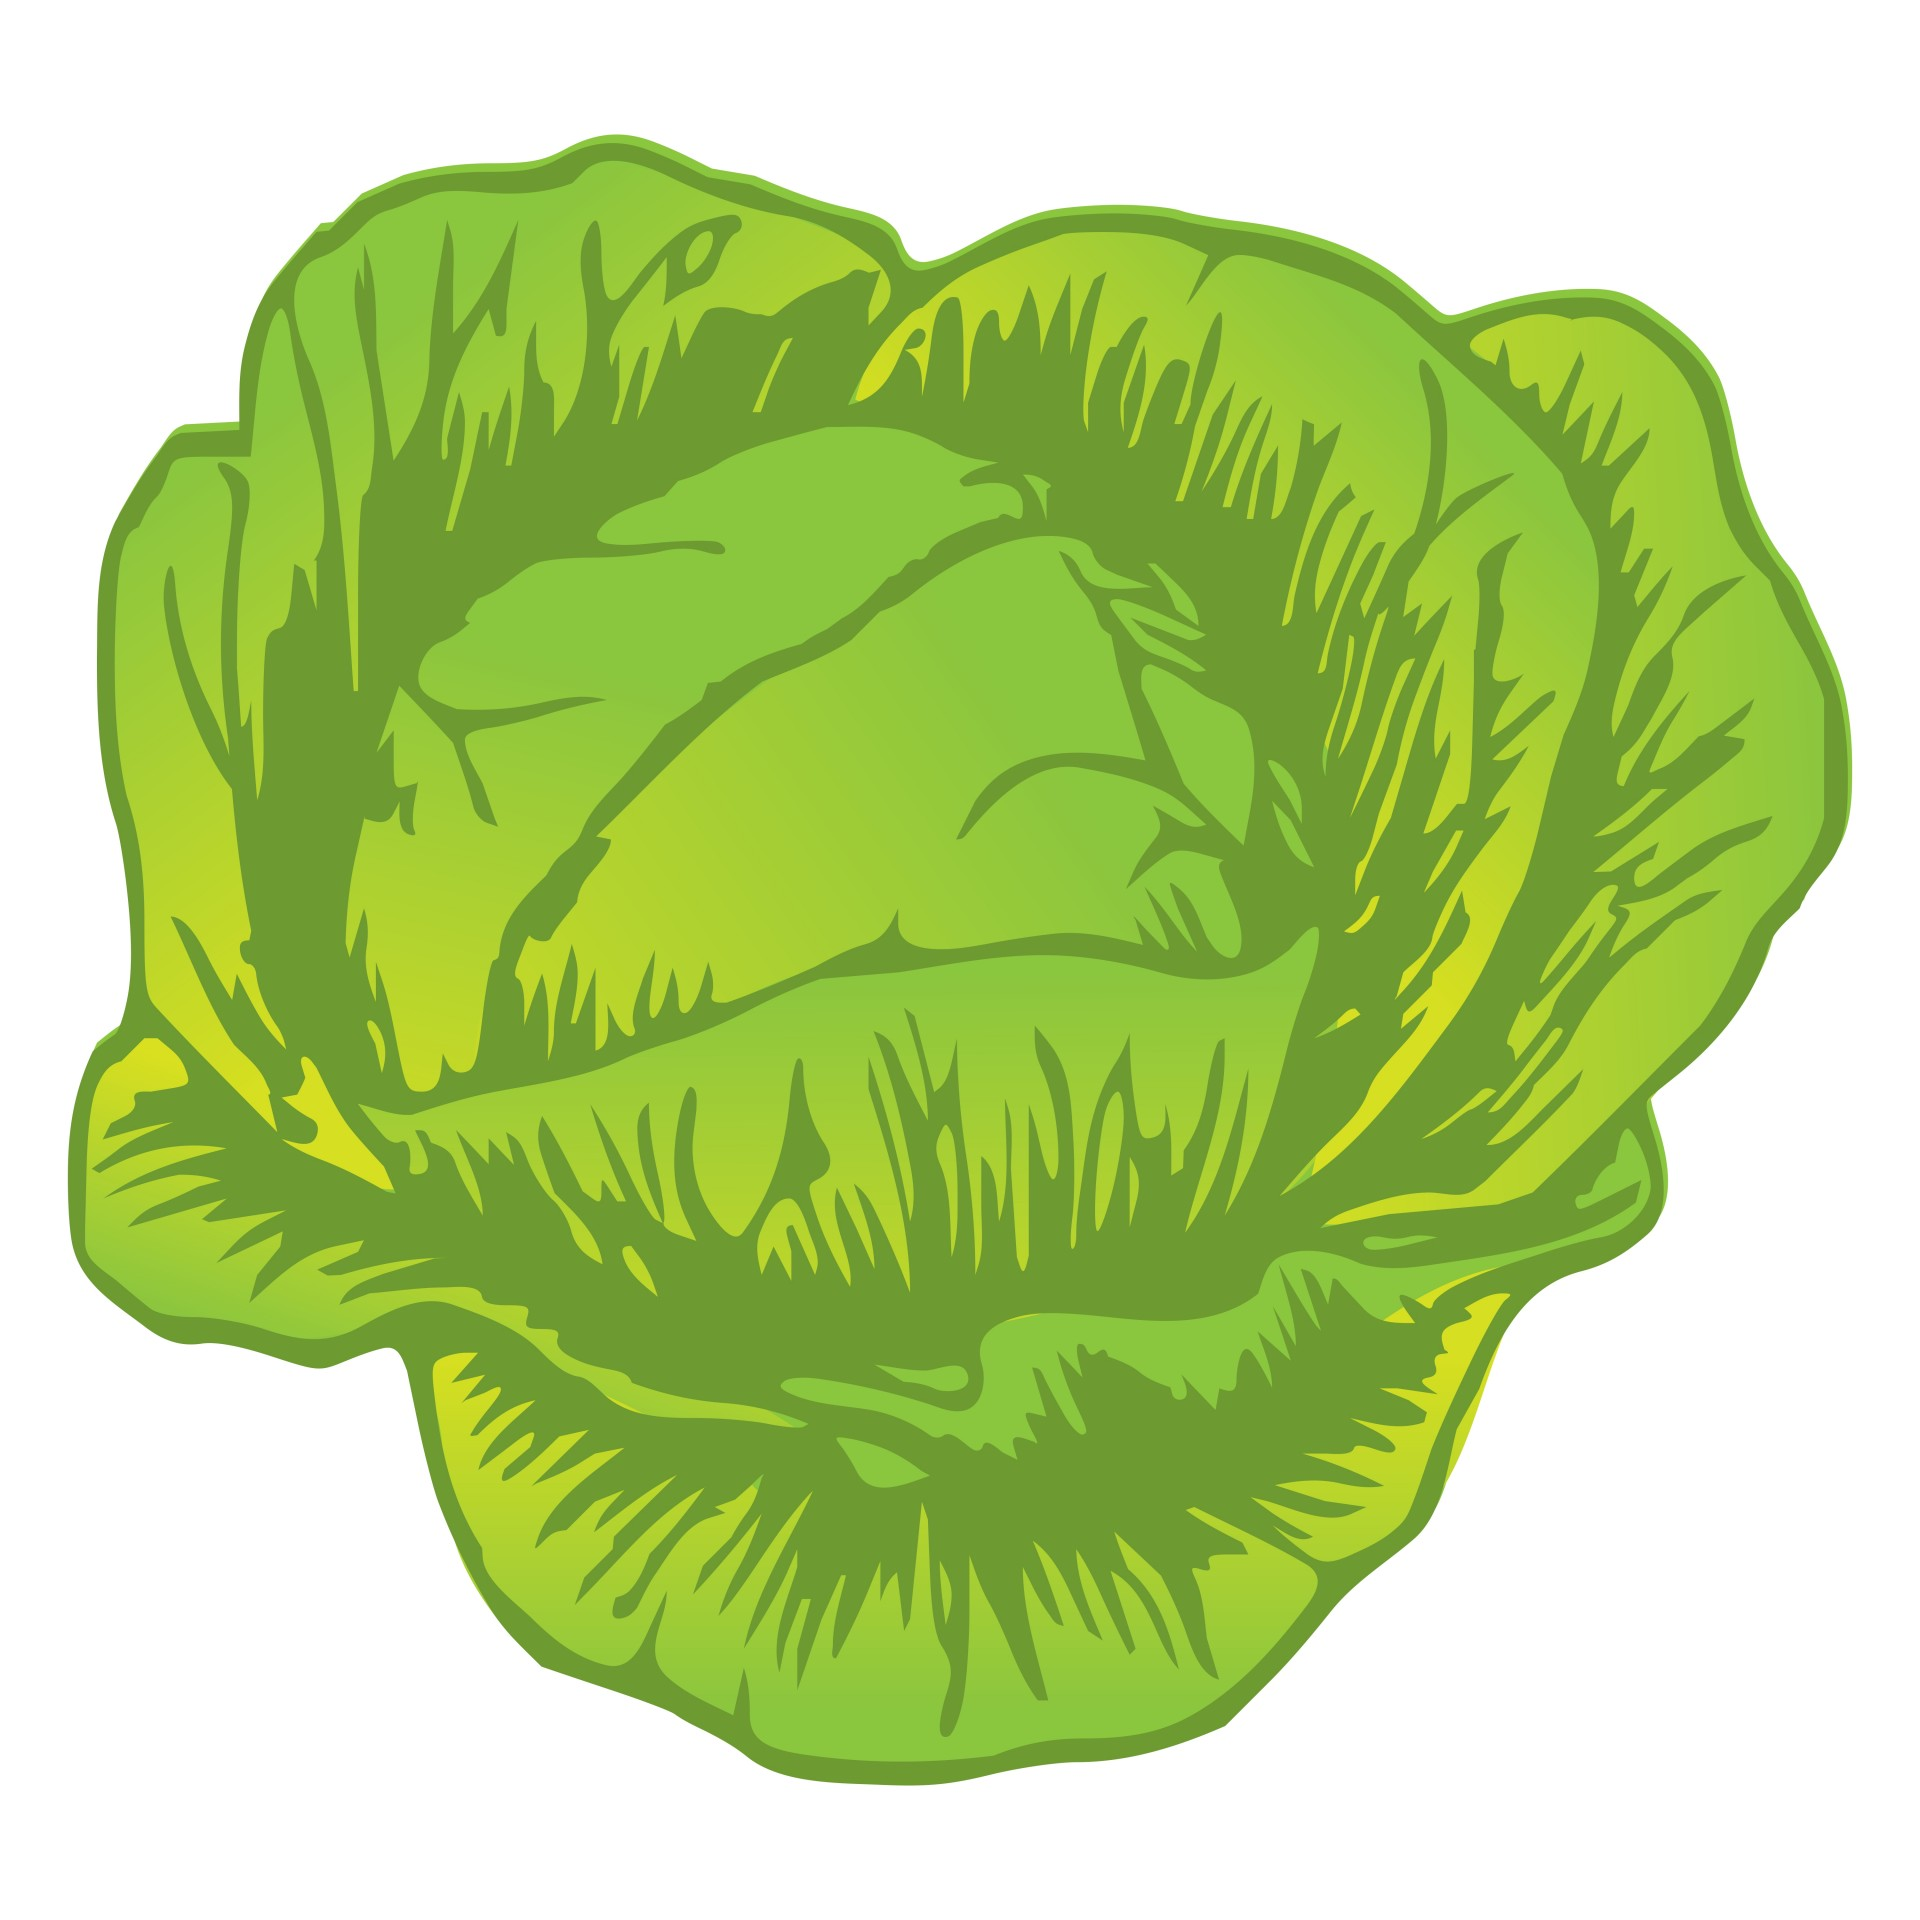 Cabbage clipart head lettuce. Drawing at getdrawings com